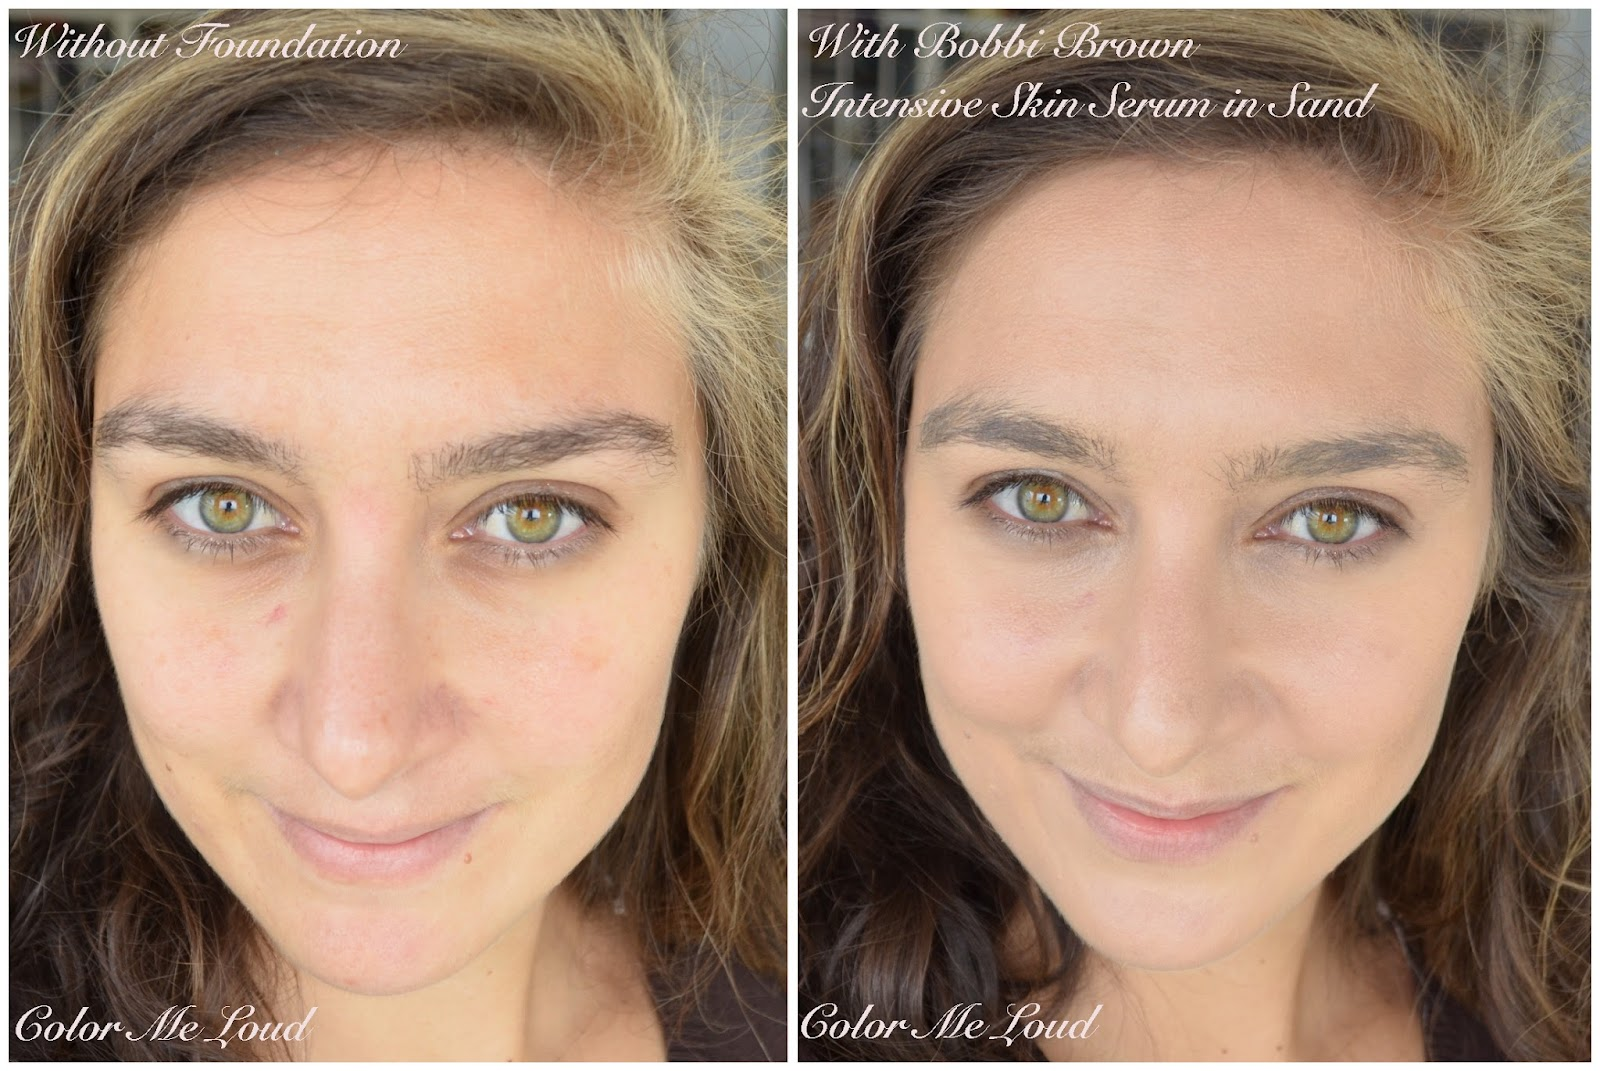 aa8b756849e Before/After: Bobbi Brown Intensive Skin Serum Foundation SPF 40 in #2 Sand